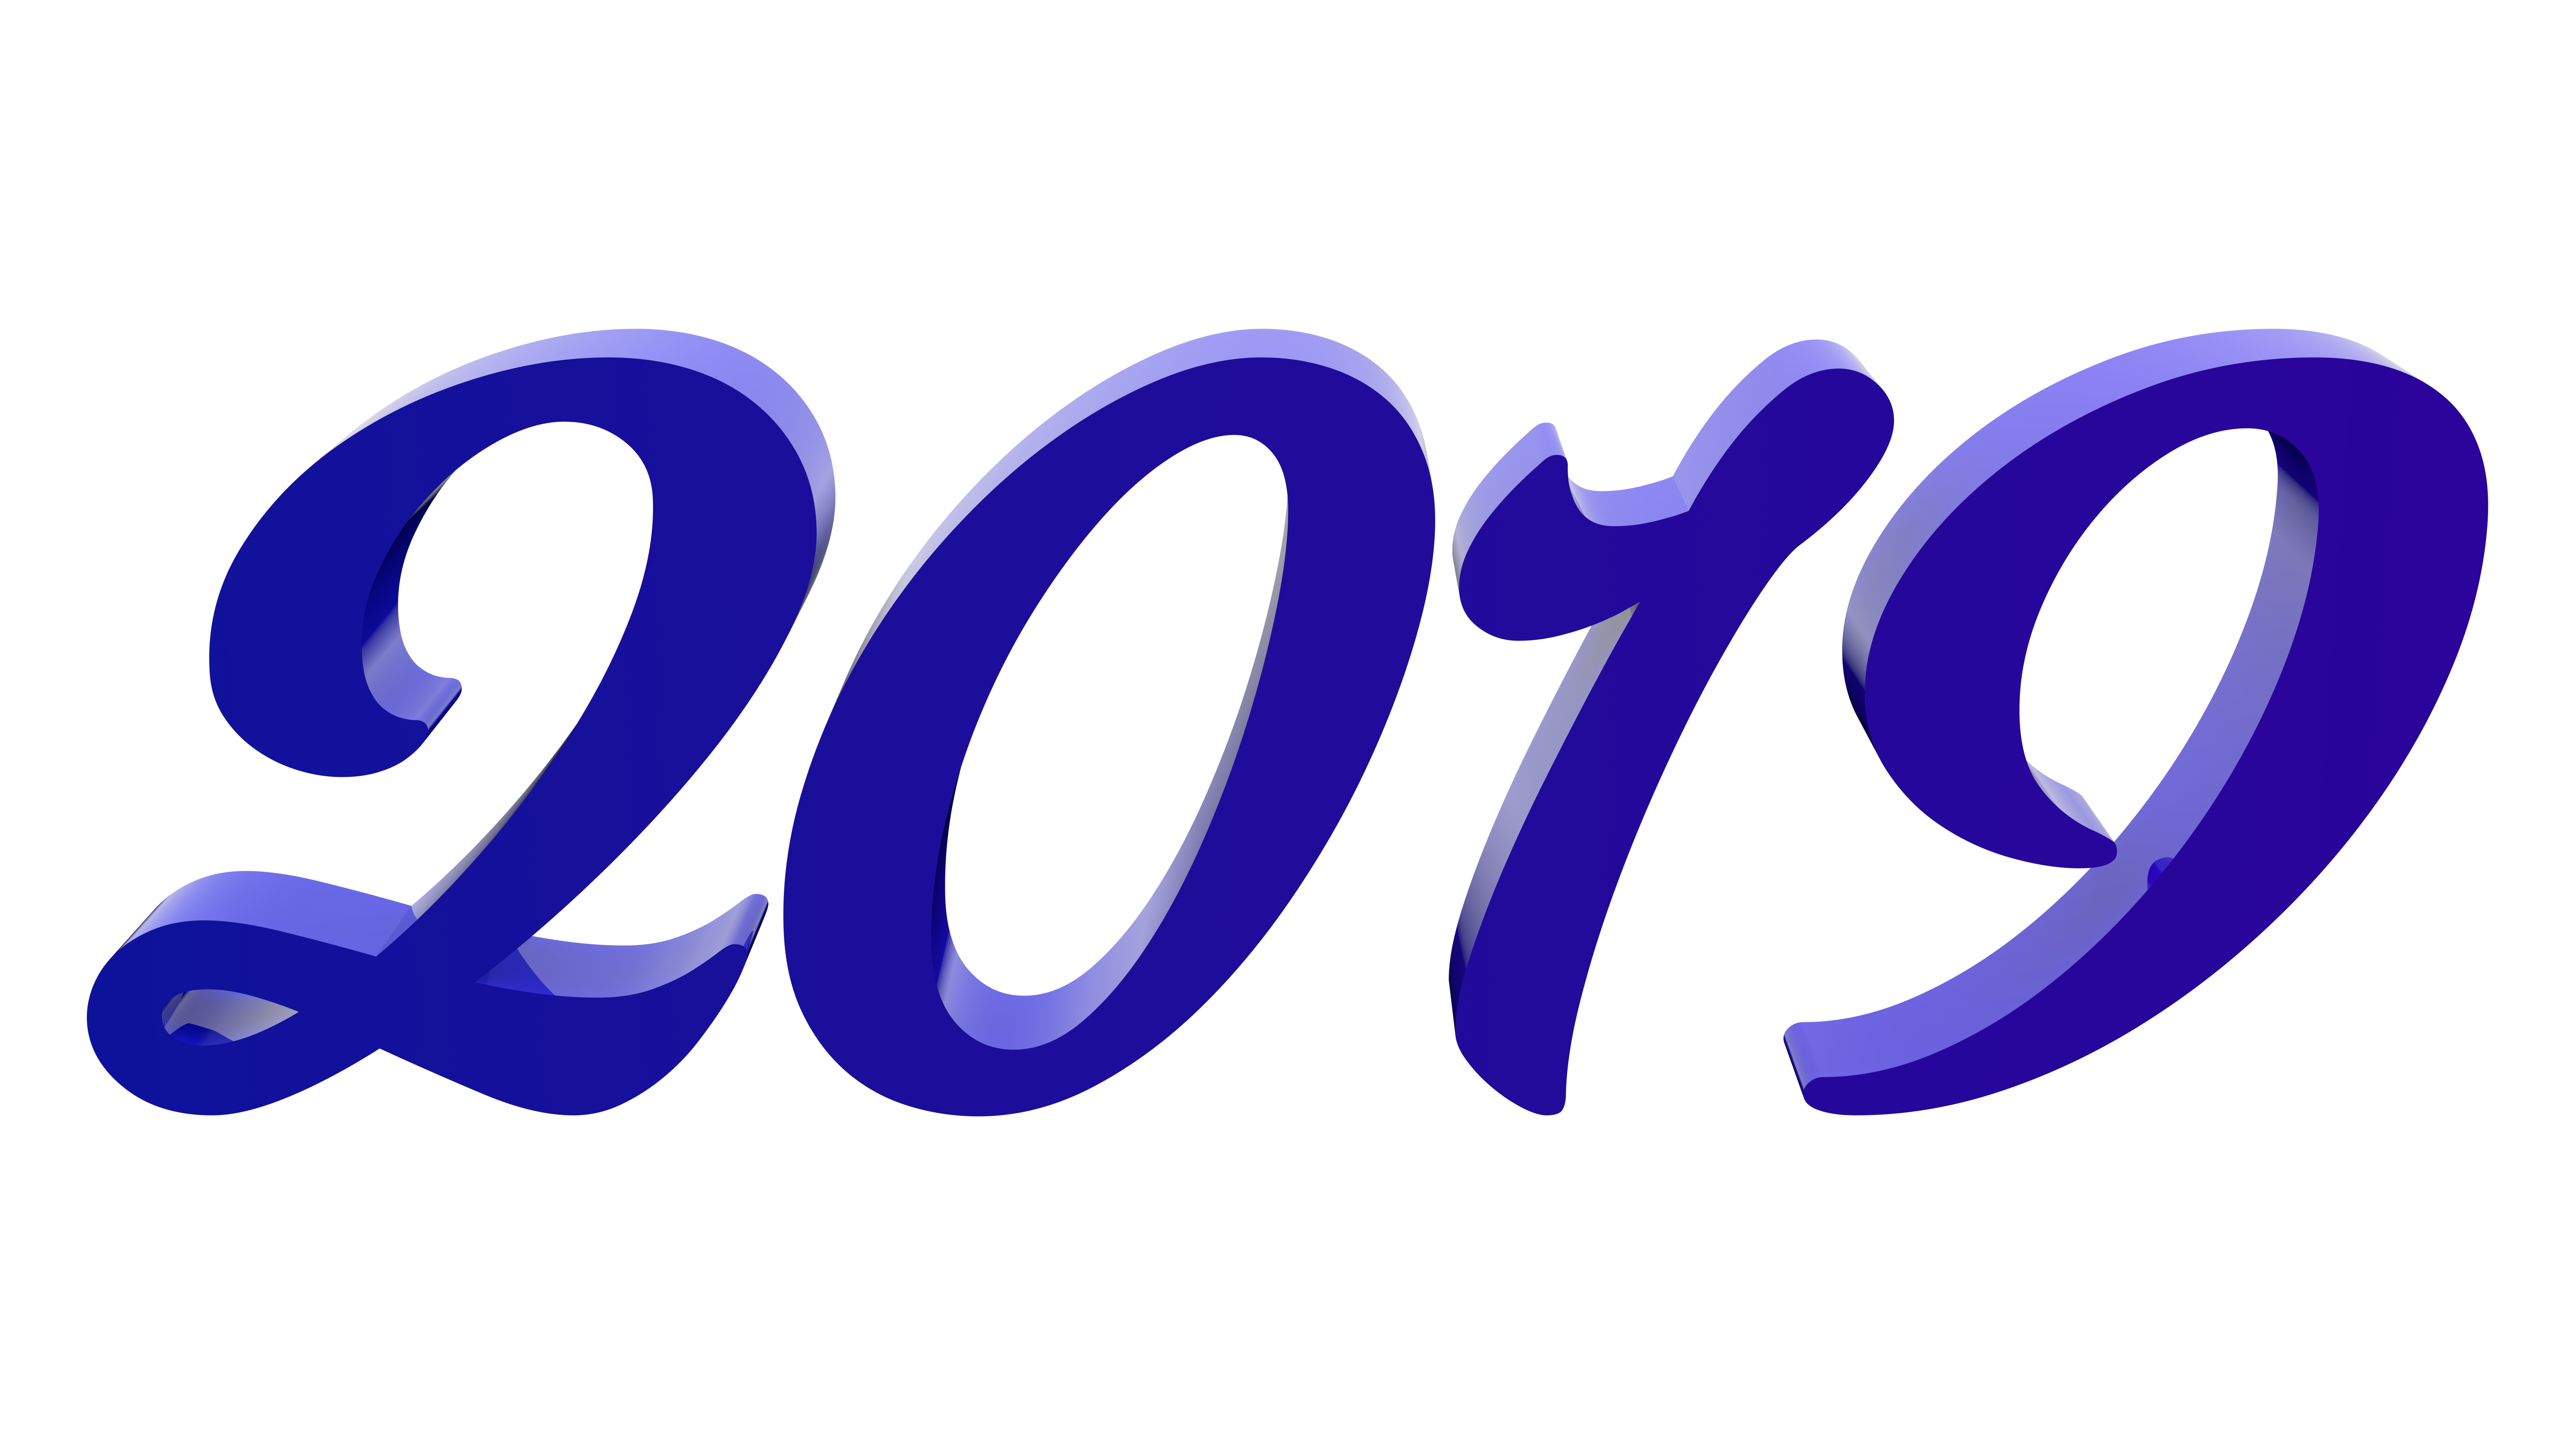 Blue 2019 PNG Clipart Image #47310.